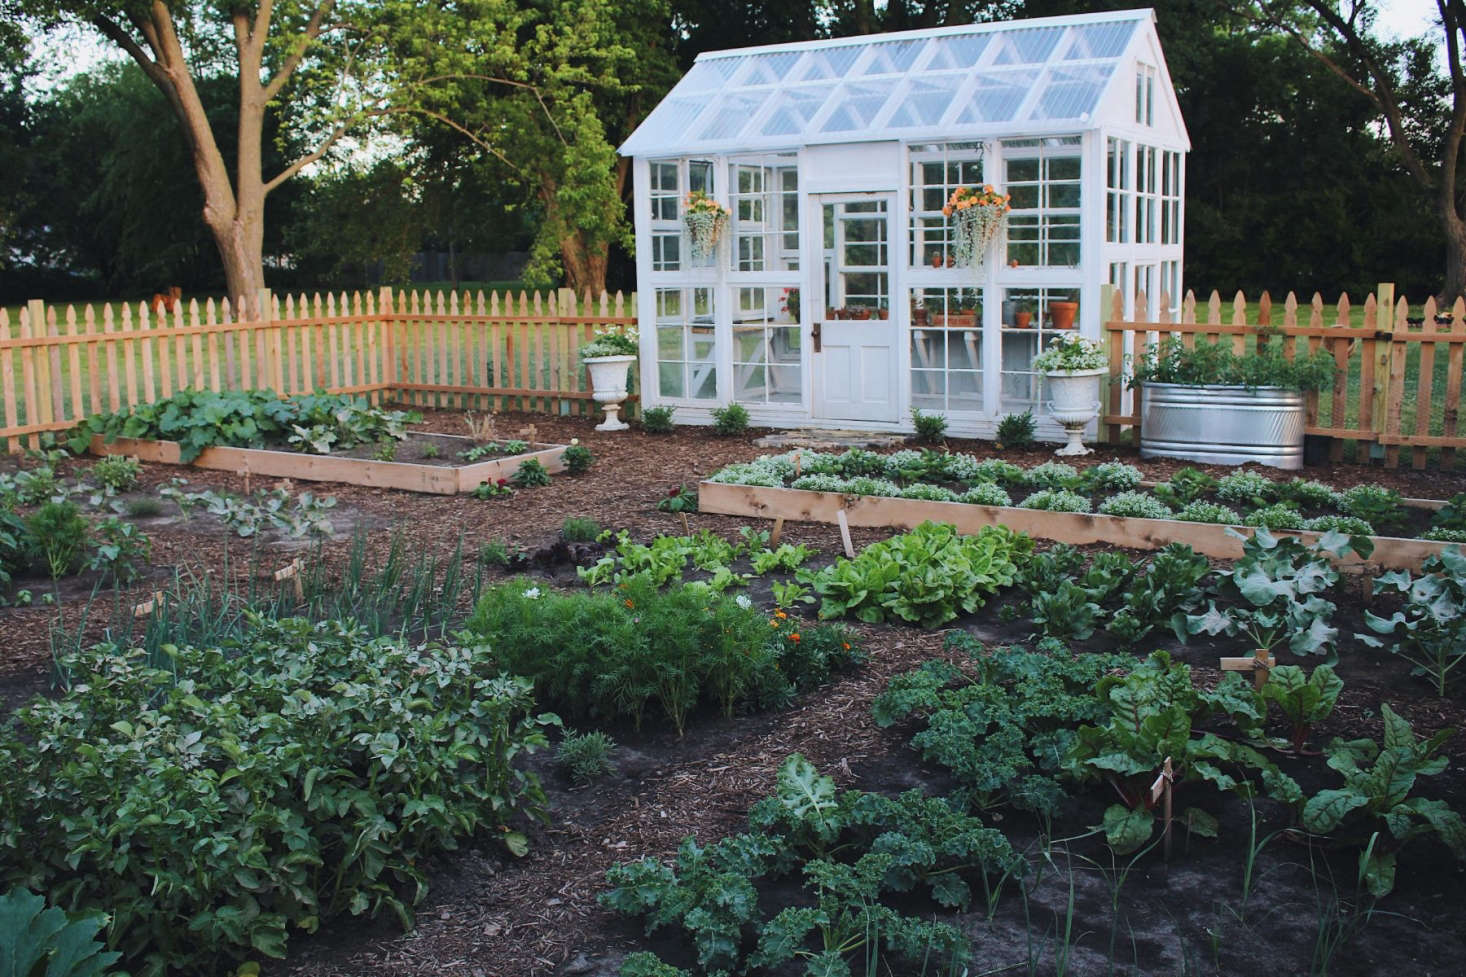 This Sustainable Kitchen Garden in Kalona, Iowa, was entered by Under A Tin Roof and chosen as a finalist by Gardenista editor Michelle Slatalla, who said: &#8